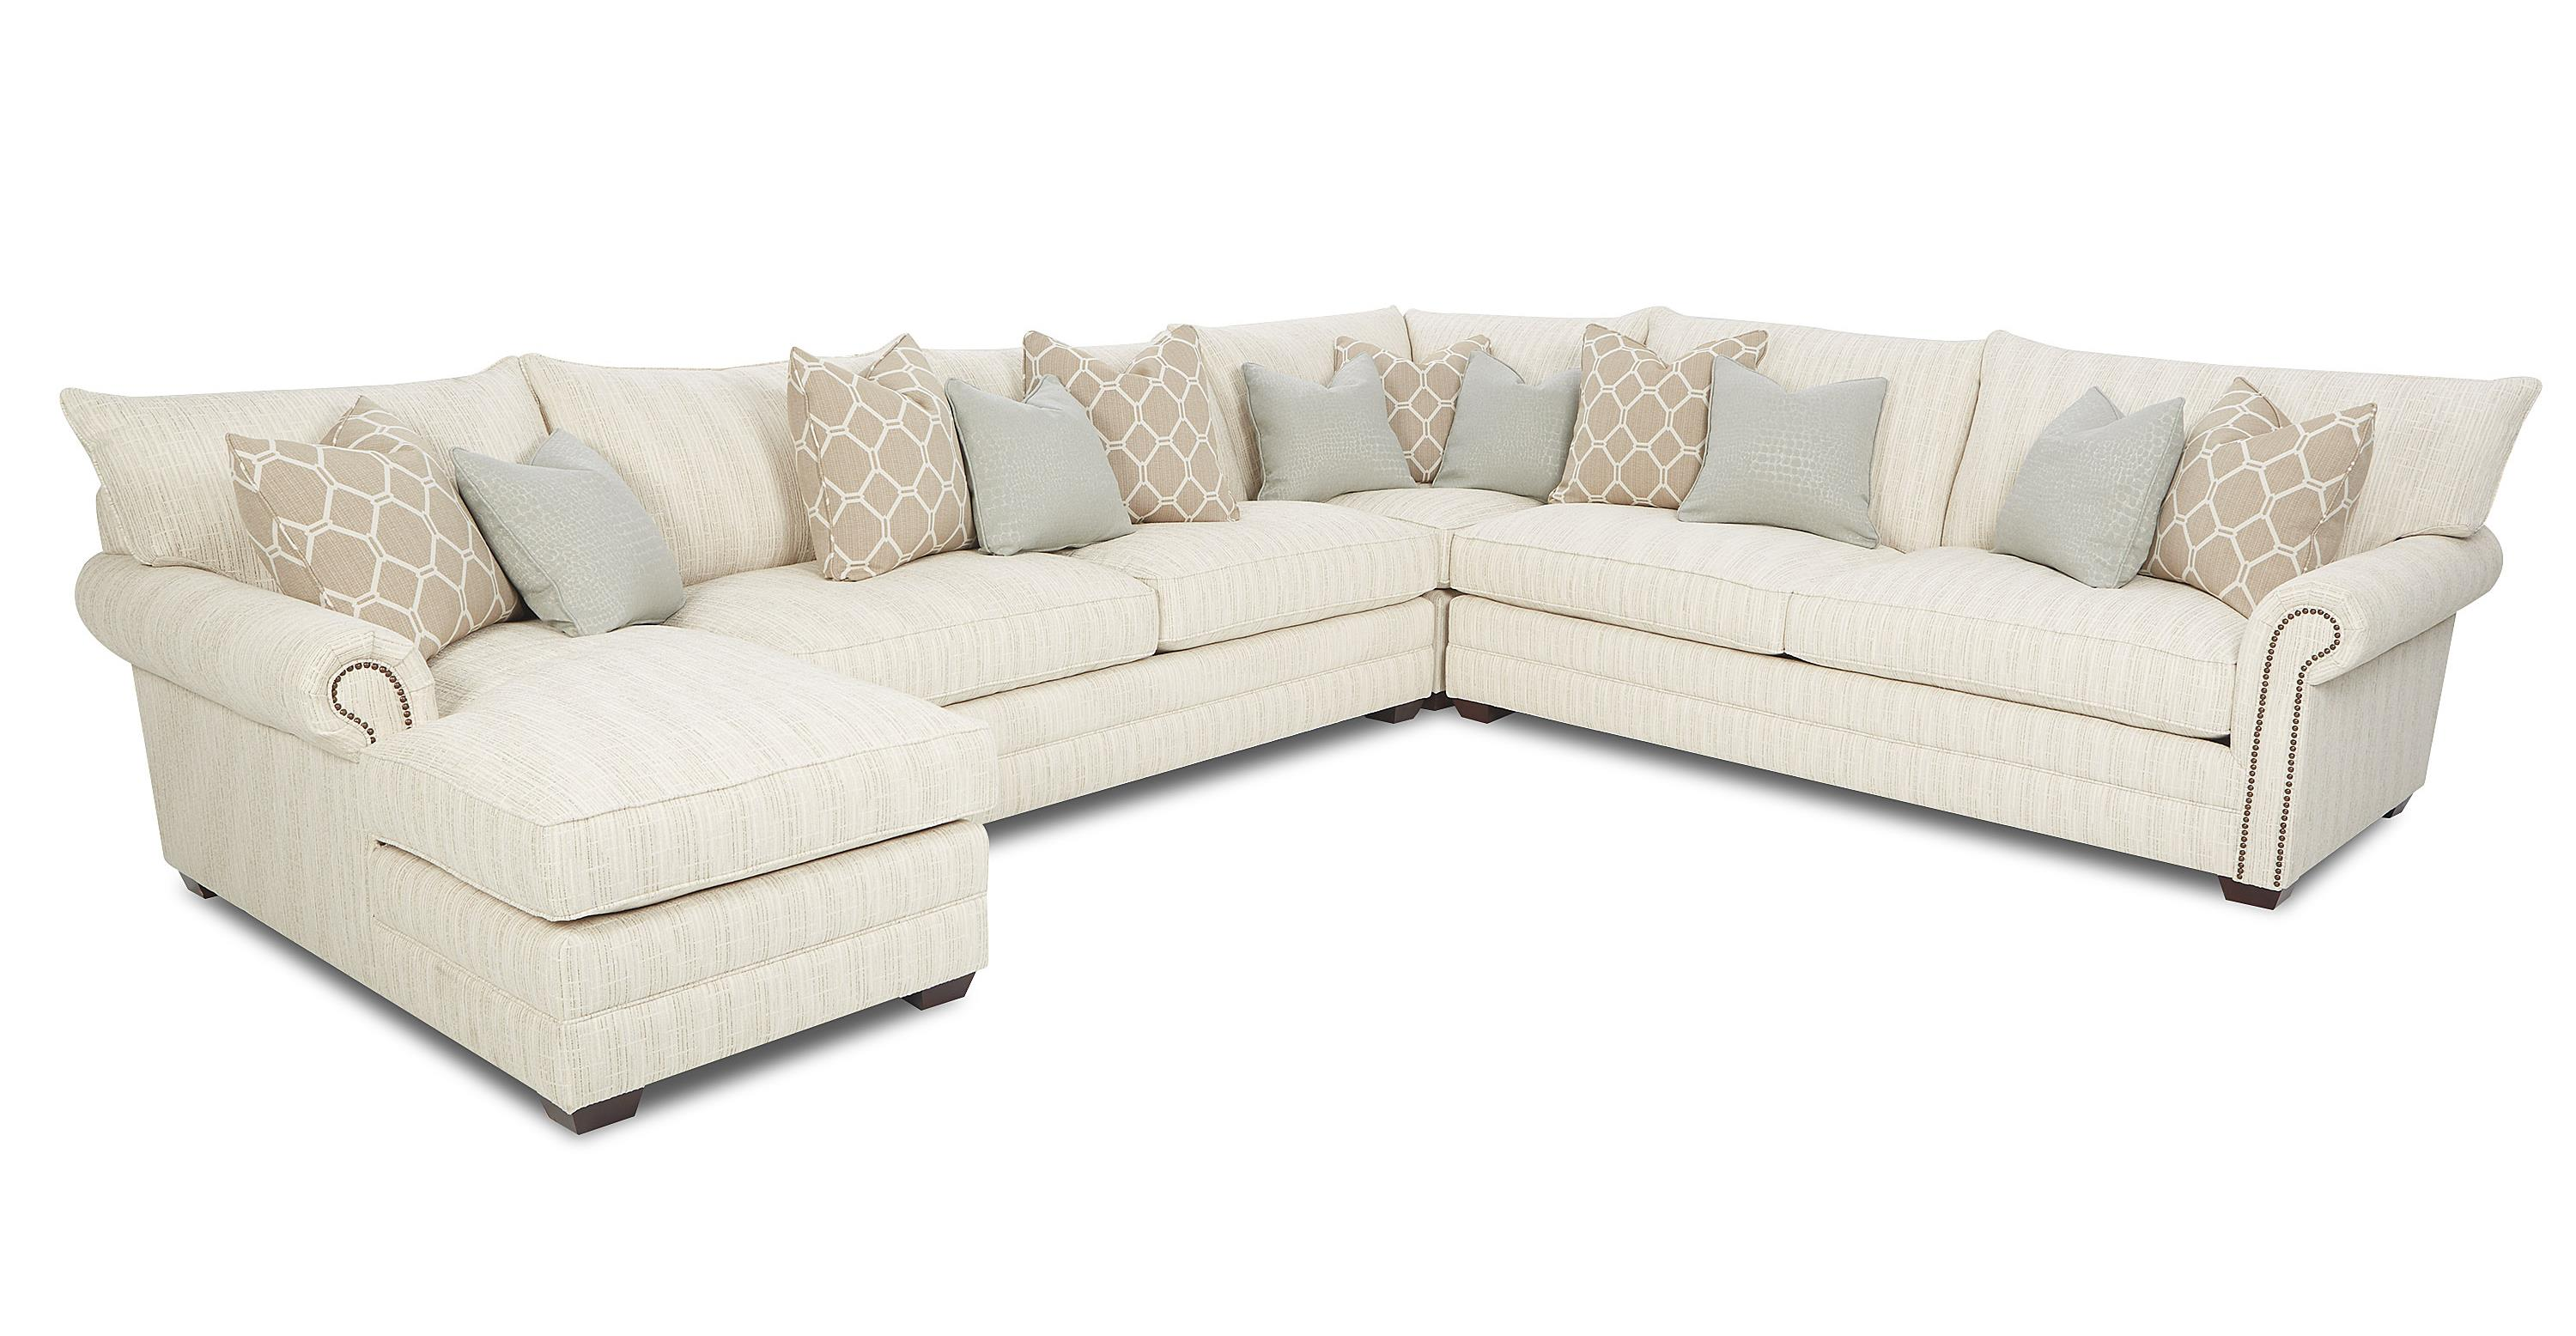 Traditional sectional sofa with nailhead trim and chaise for Traditional sectional